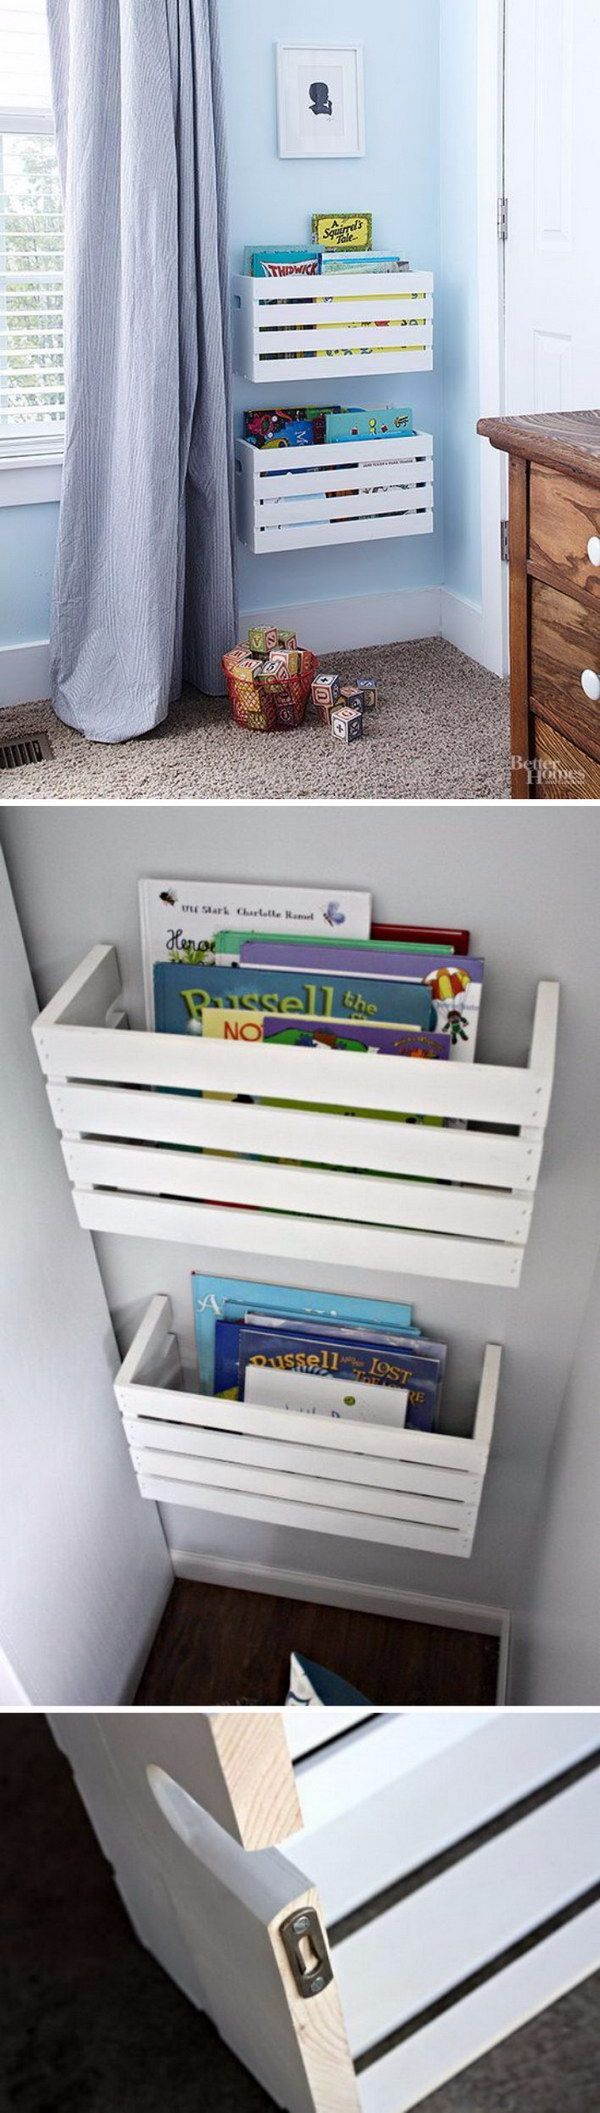 Make Great Crate Book Storage For Unused Wall Space Bachelorette